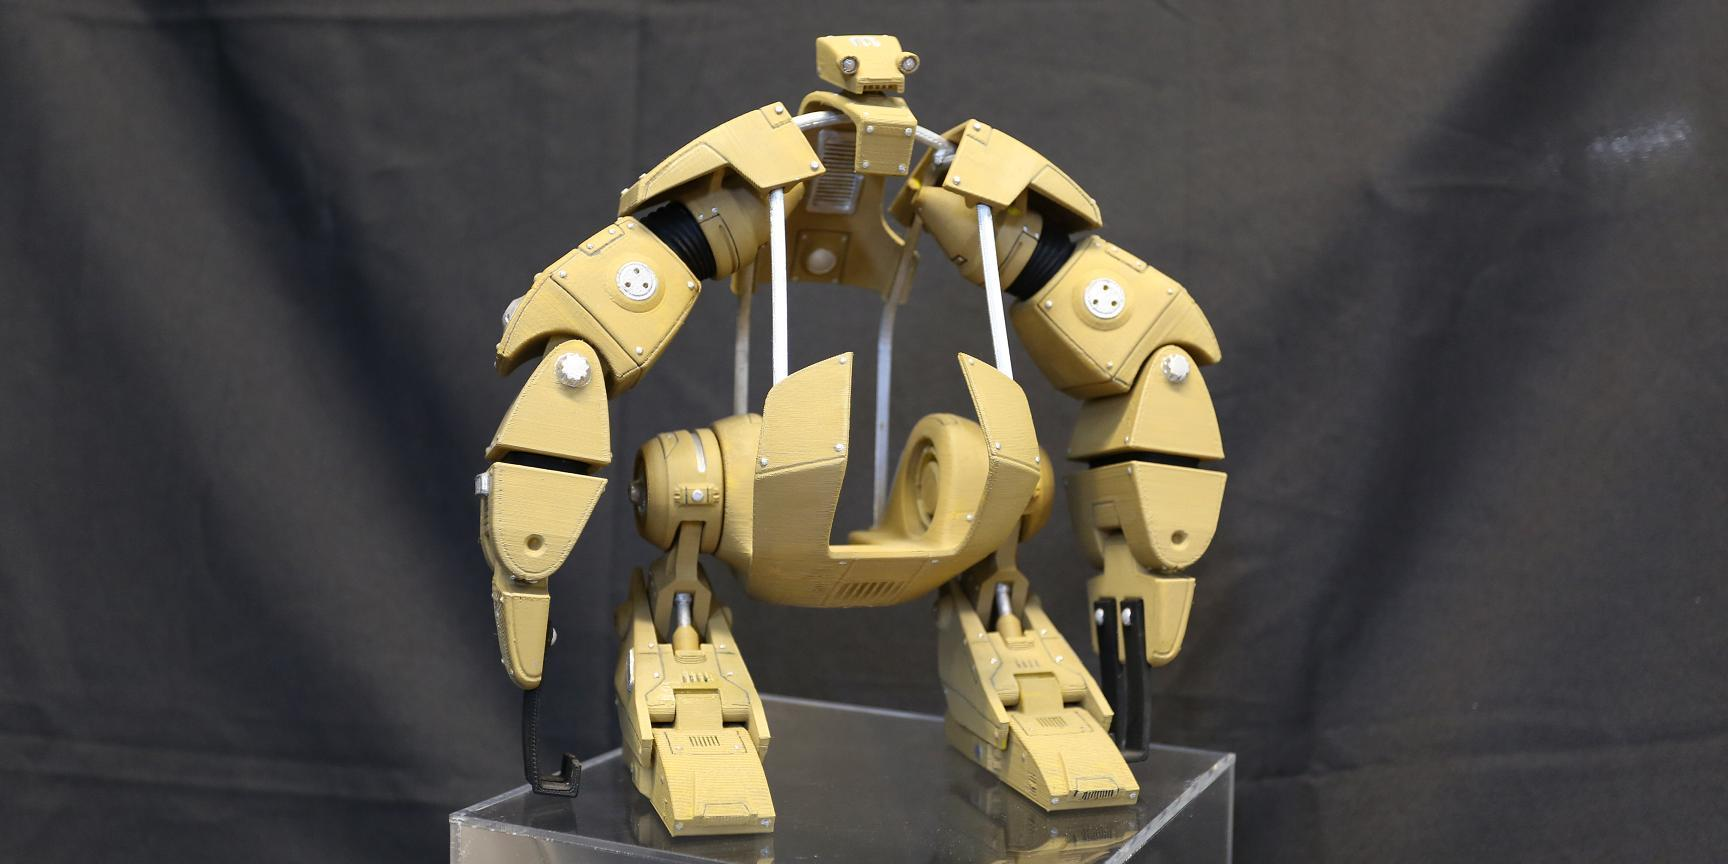 The 3D Printed Brooklyn Bridge Robot is Alive!